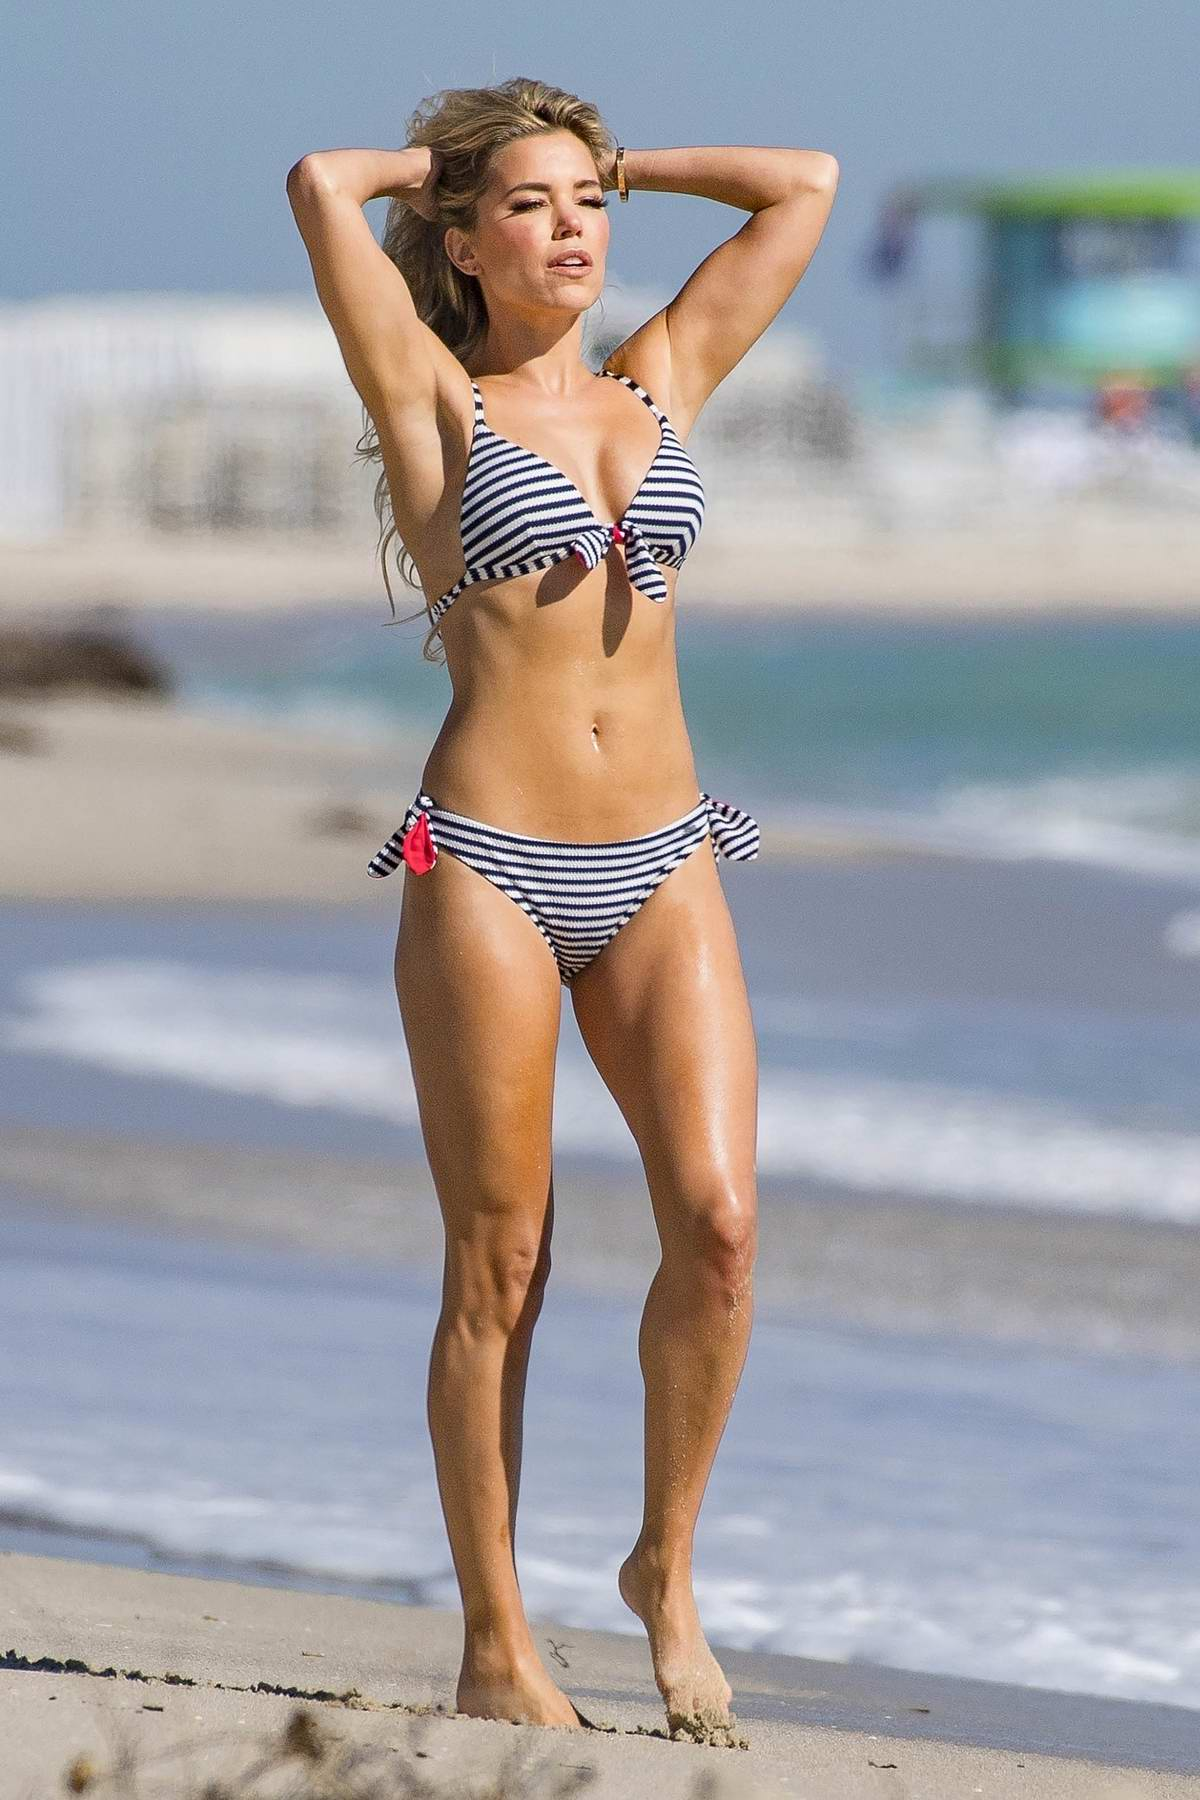 Sylvie Meis dons assorted bikinis as she shoots for her new Sylvie Designs bikini collection on Miami beach, Florida